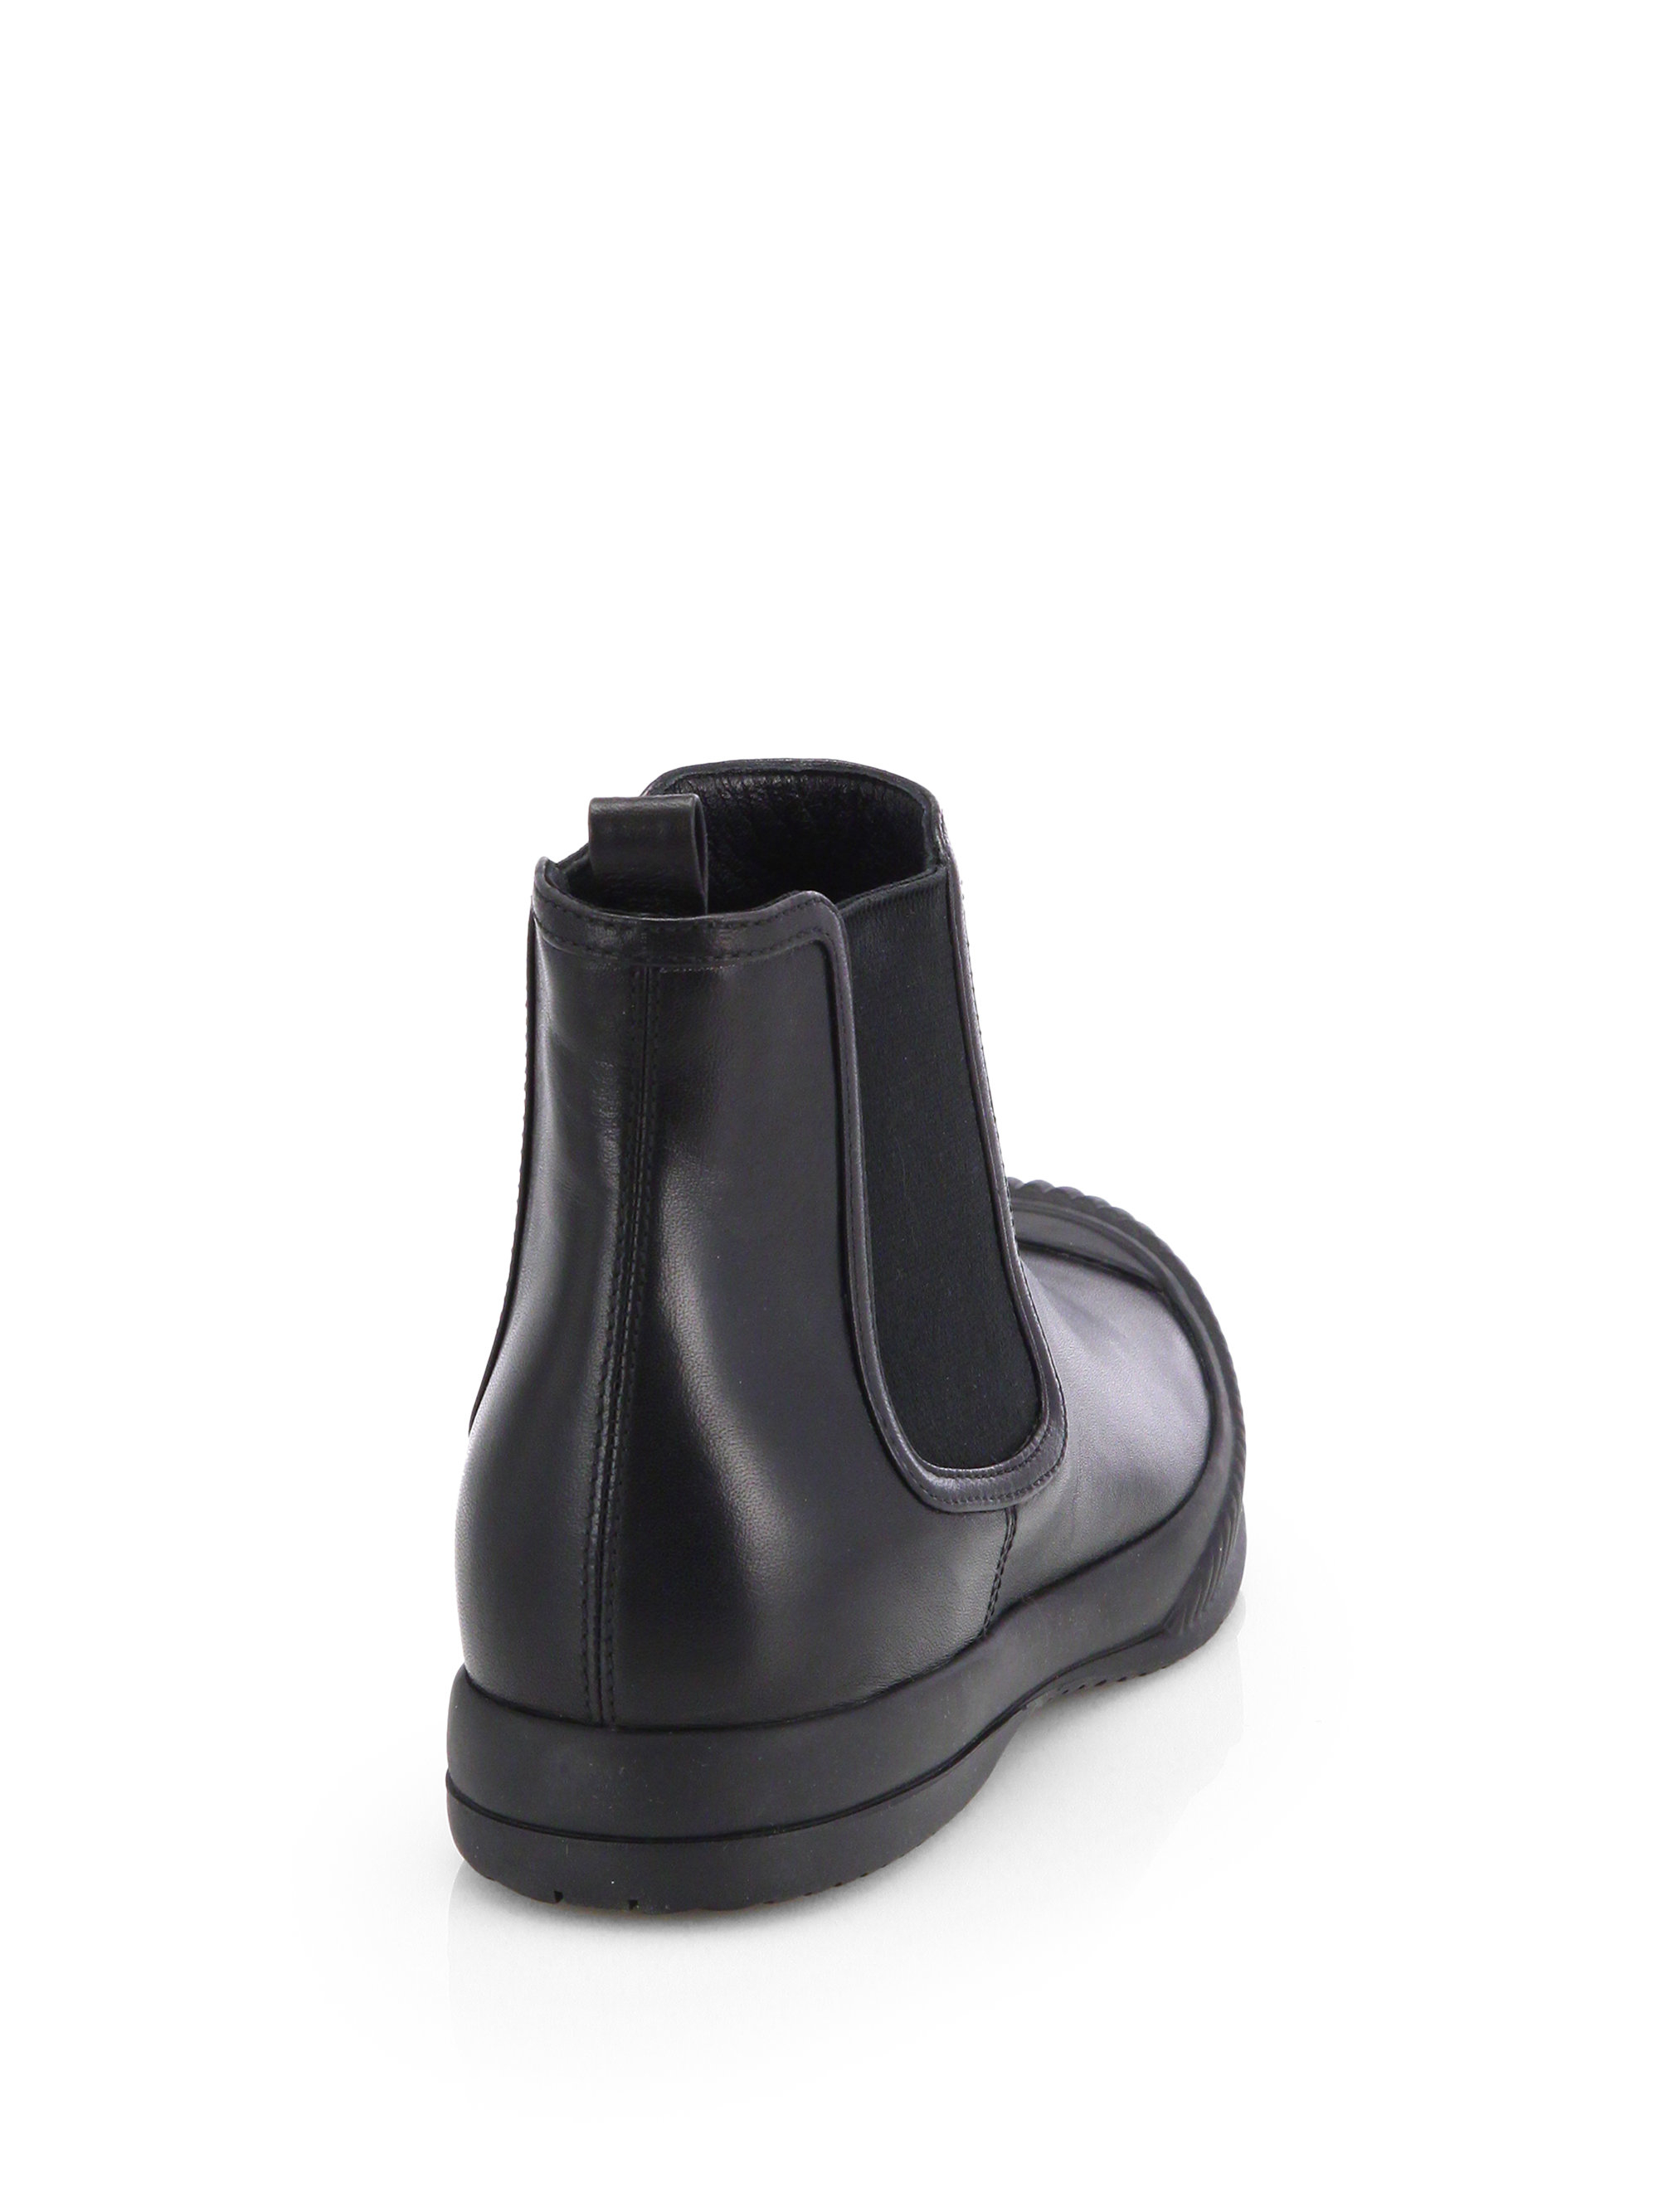 Black Short Ankle Boots - Boot Hto